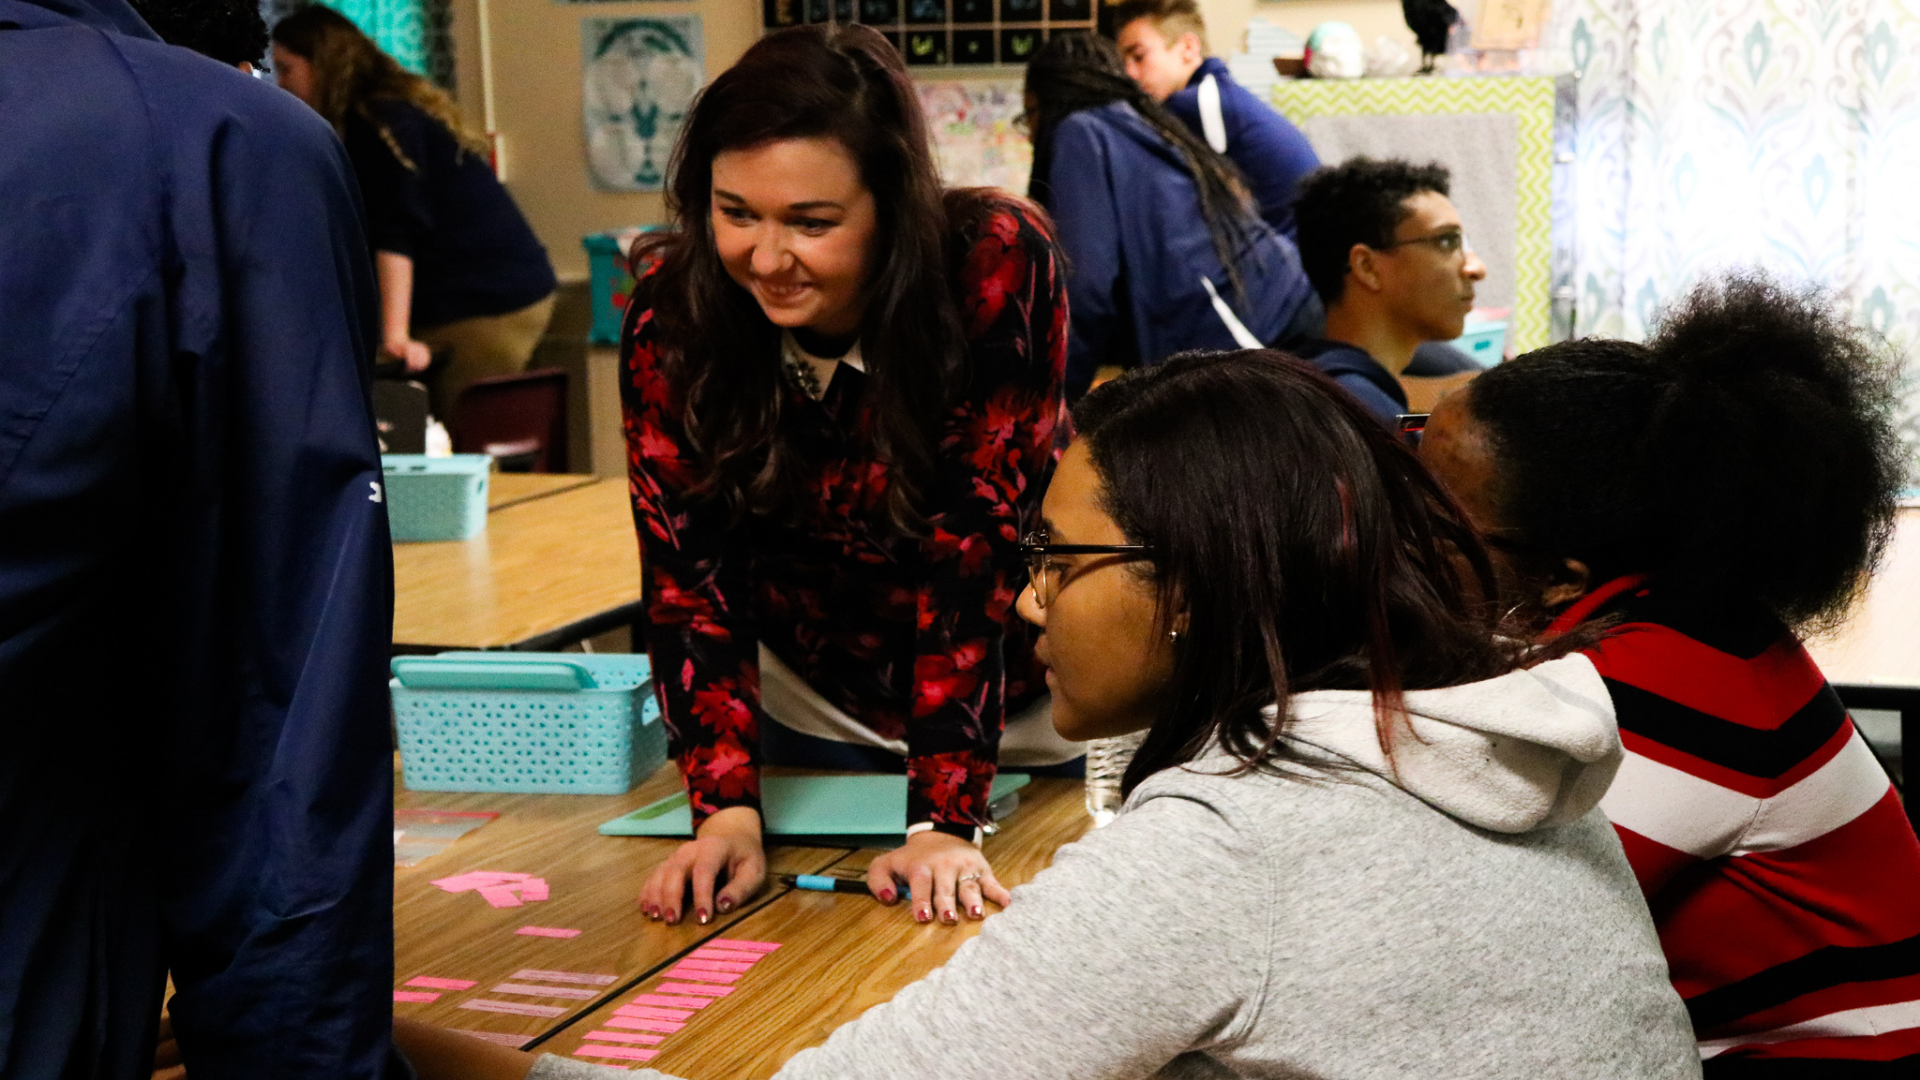 A photo of a high school classroom at Grand River Prep in Grand Rapids, where a female teacher is helping three students complete a group activity.